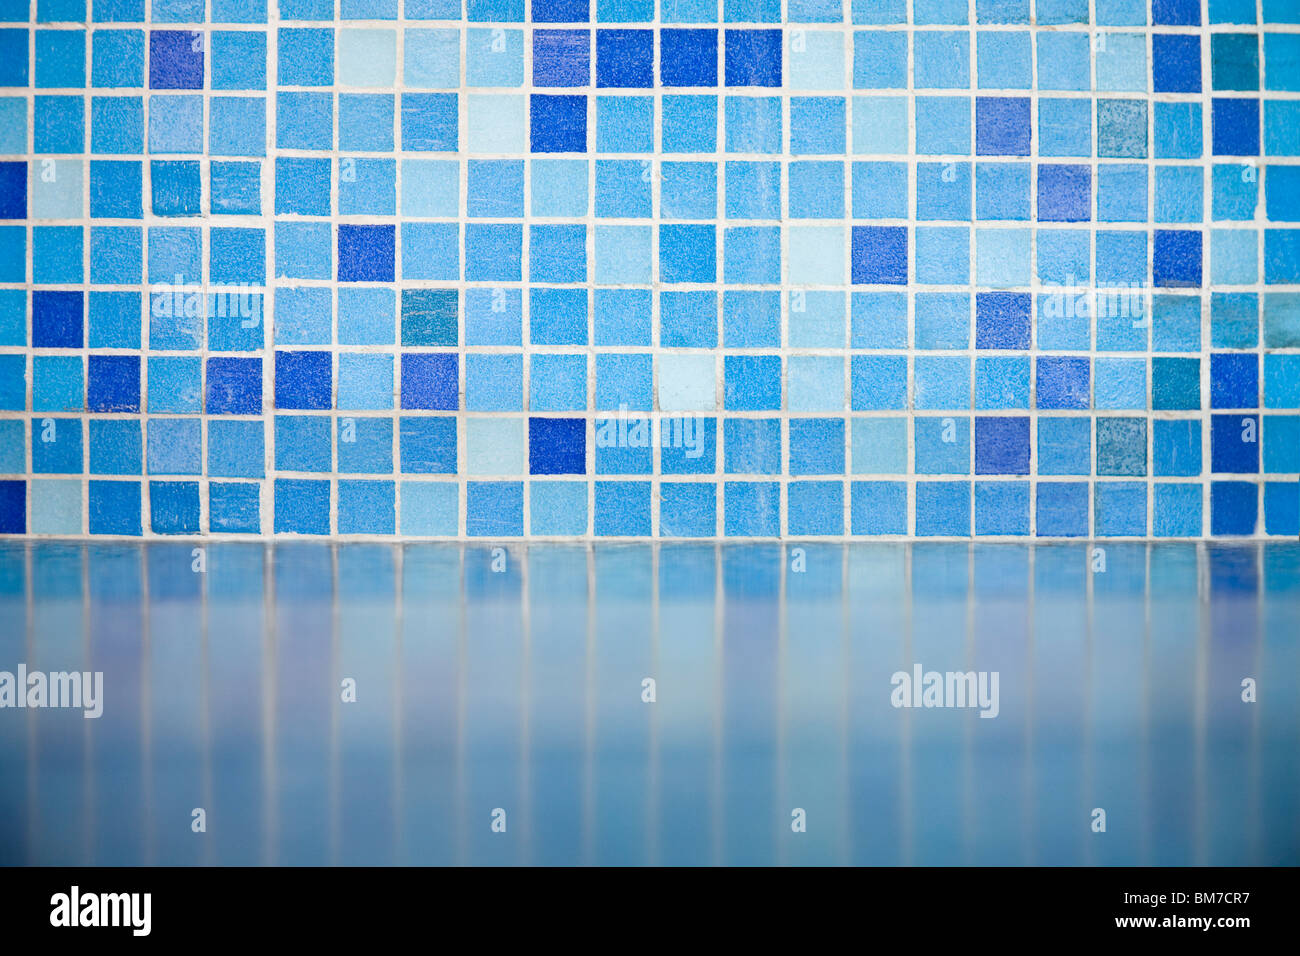 Detail of blue tiles - Stock Image